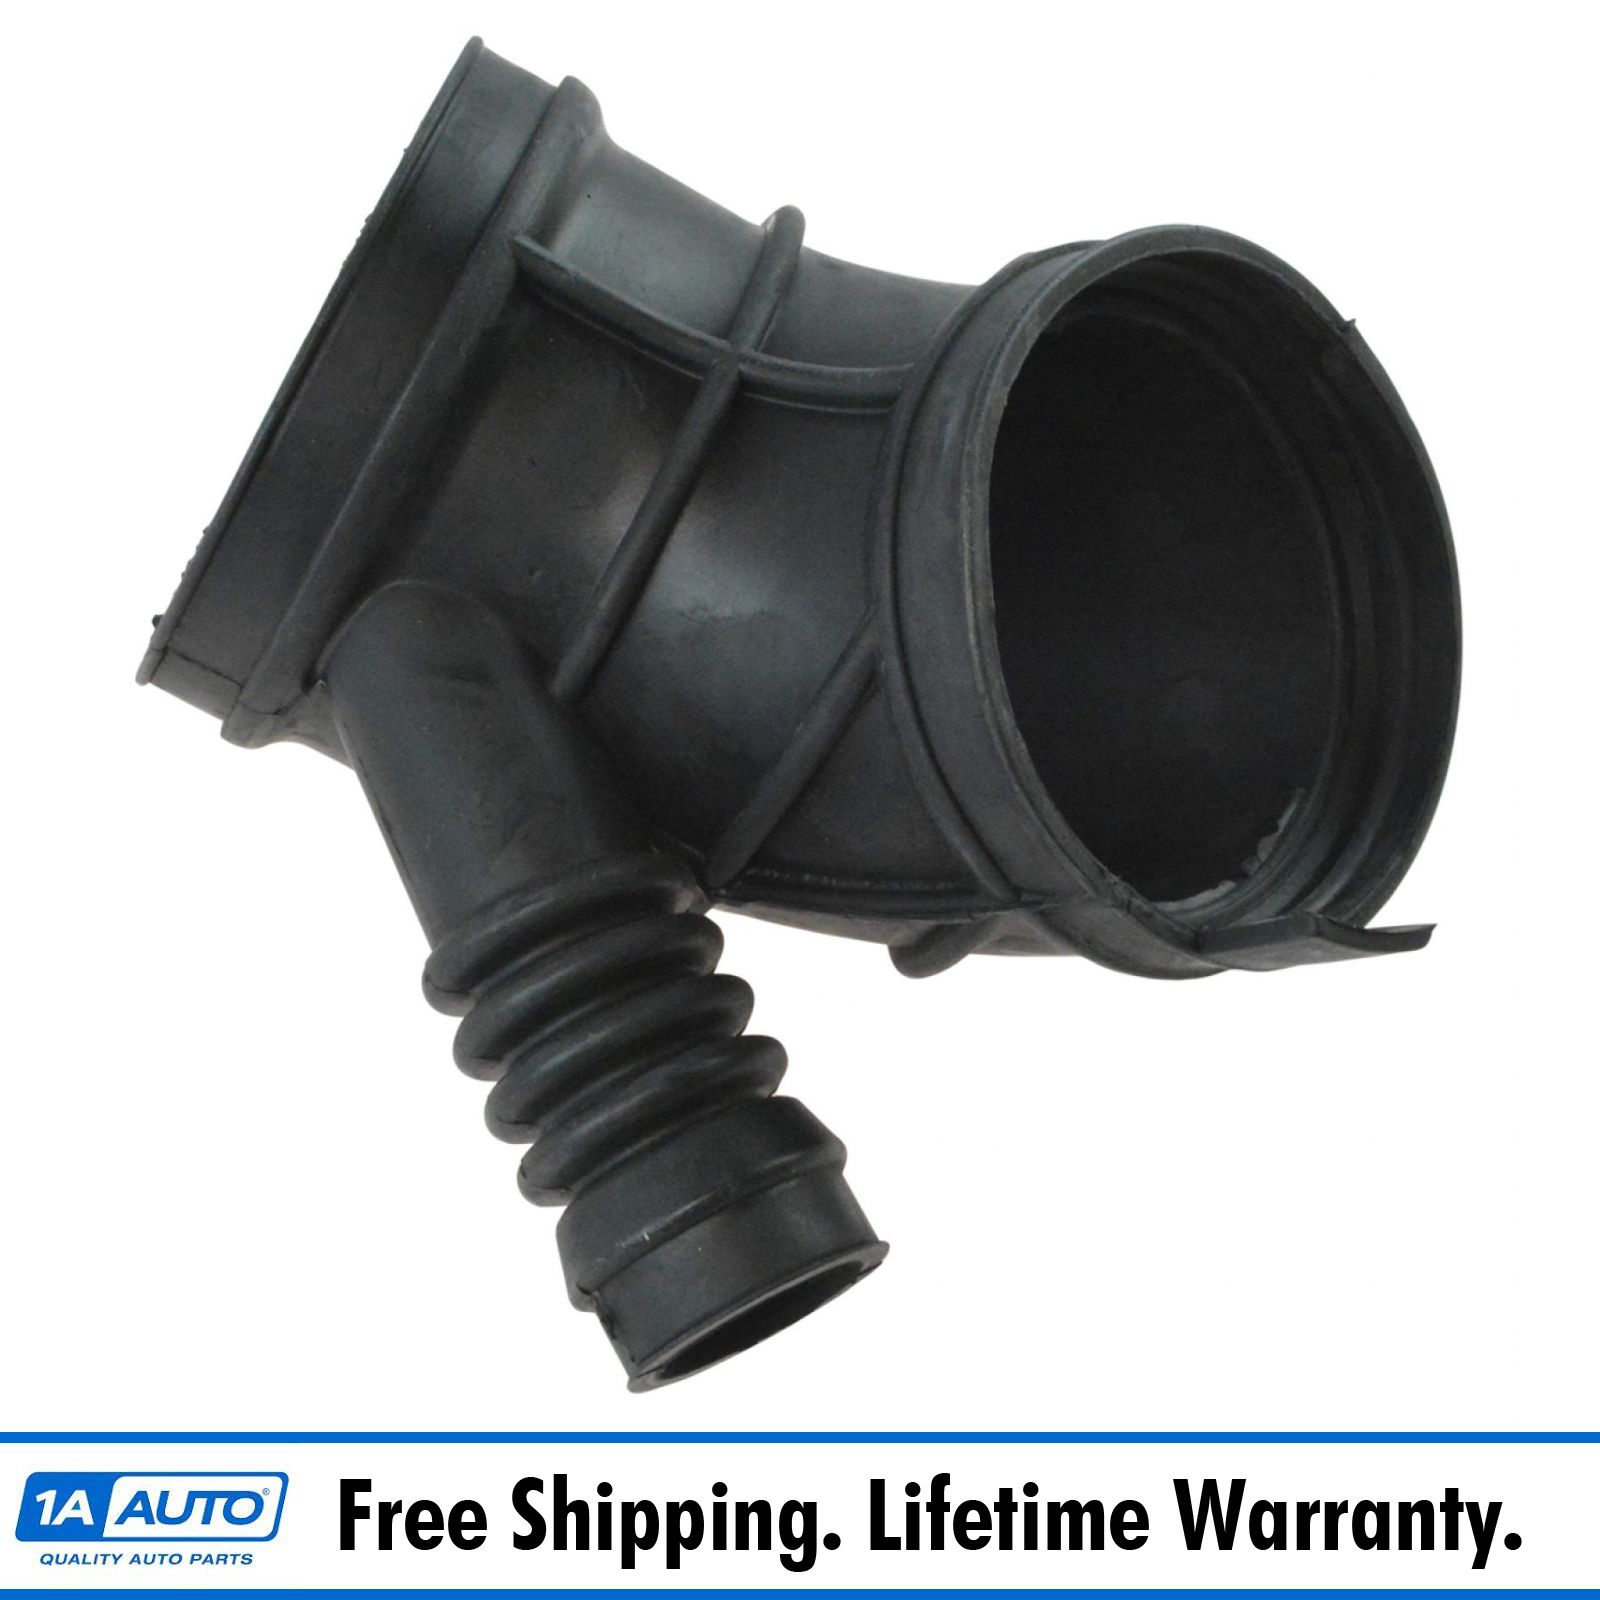 Tube Elbow Throttle Body Air Intake Boot Hose for 325Ci 325i 330CI 330i Z3